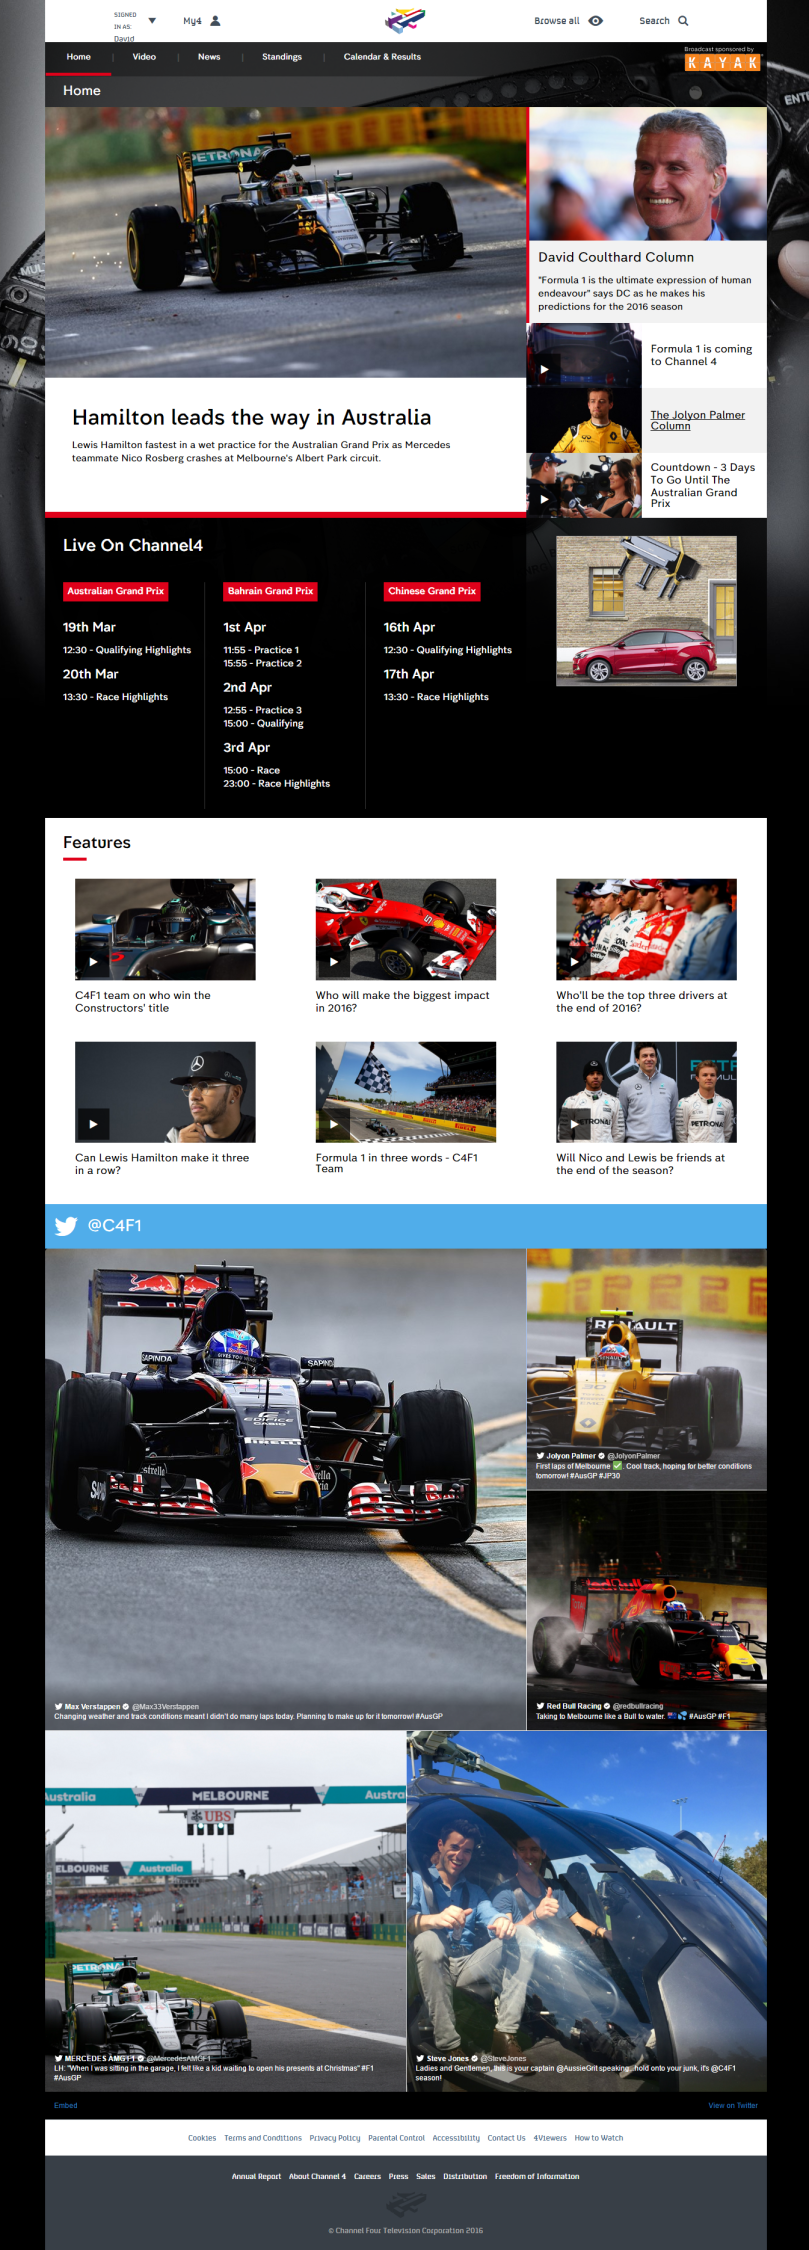 The homepage of Channel 4's new Formula 1 website.